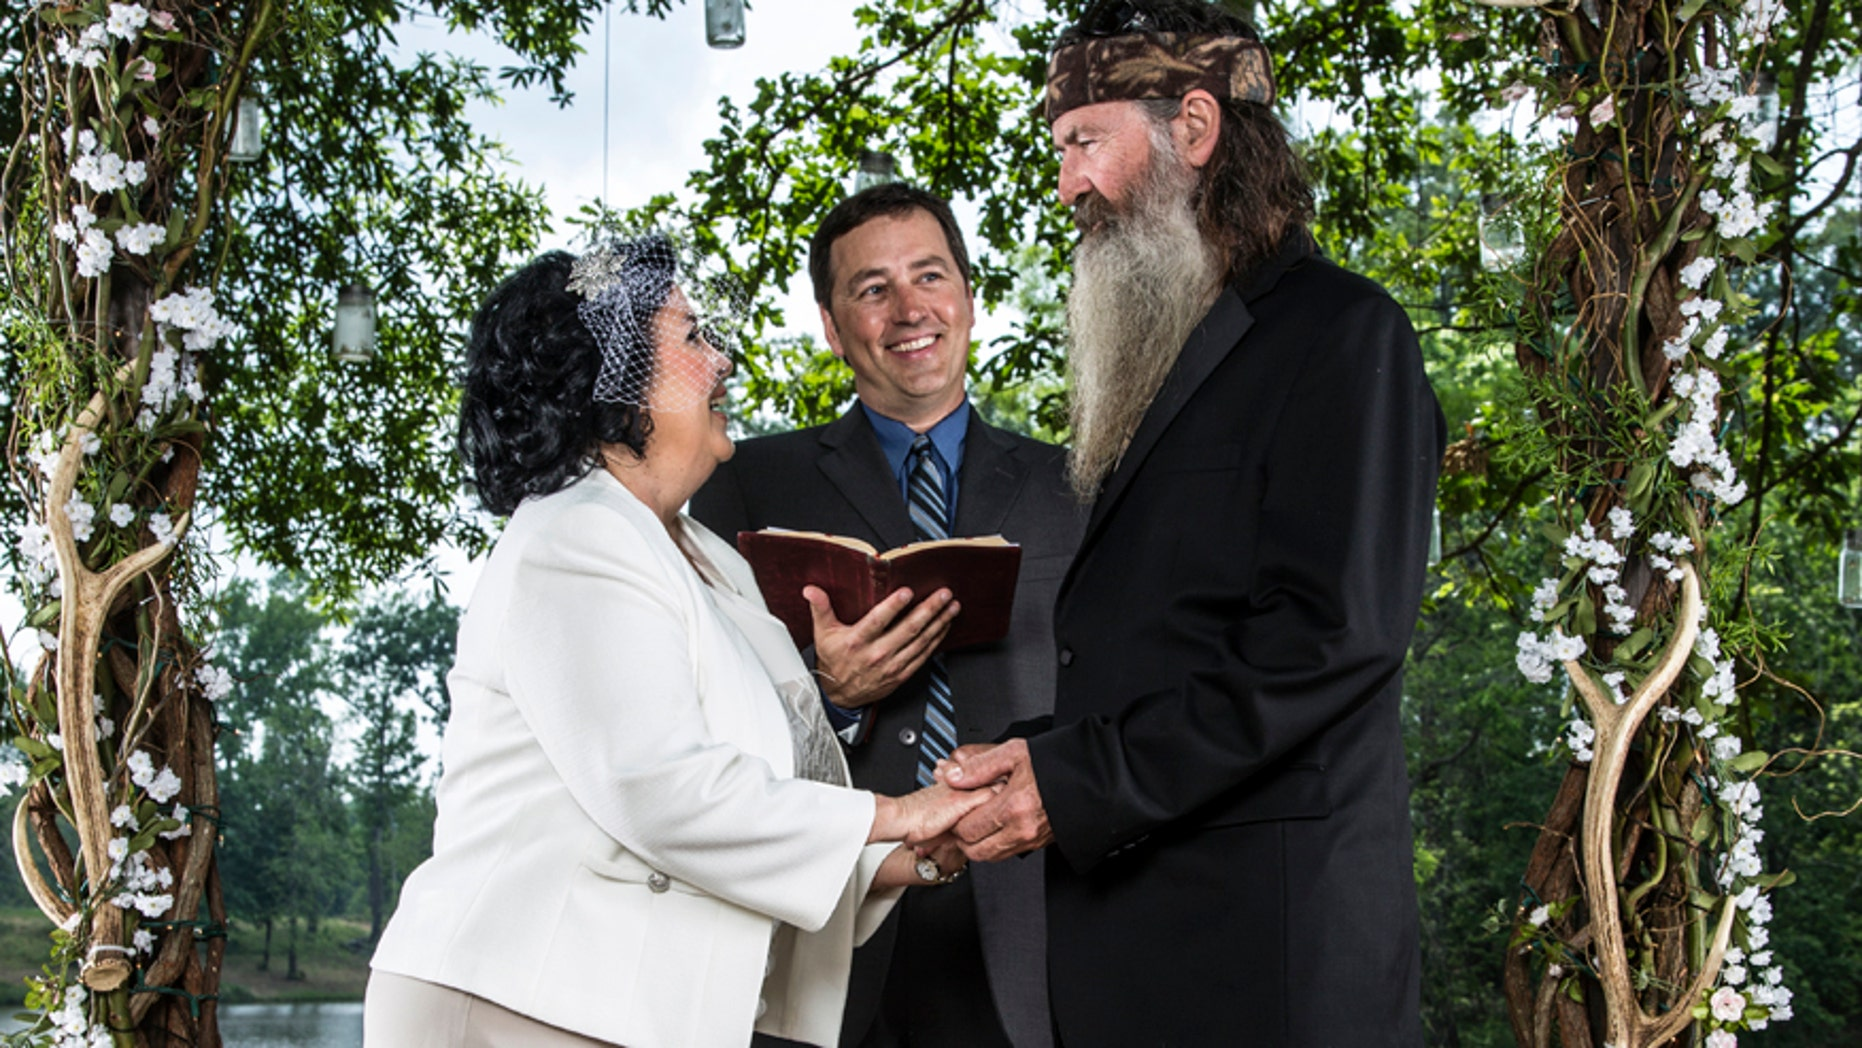 Alan Robertson (C) leads the vow renewal ceremony for his parents, Miss Kay and Phil.